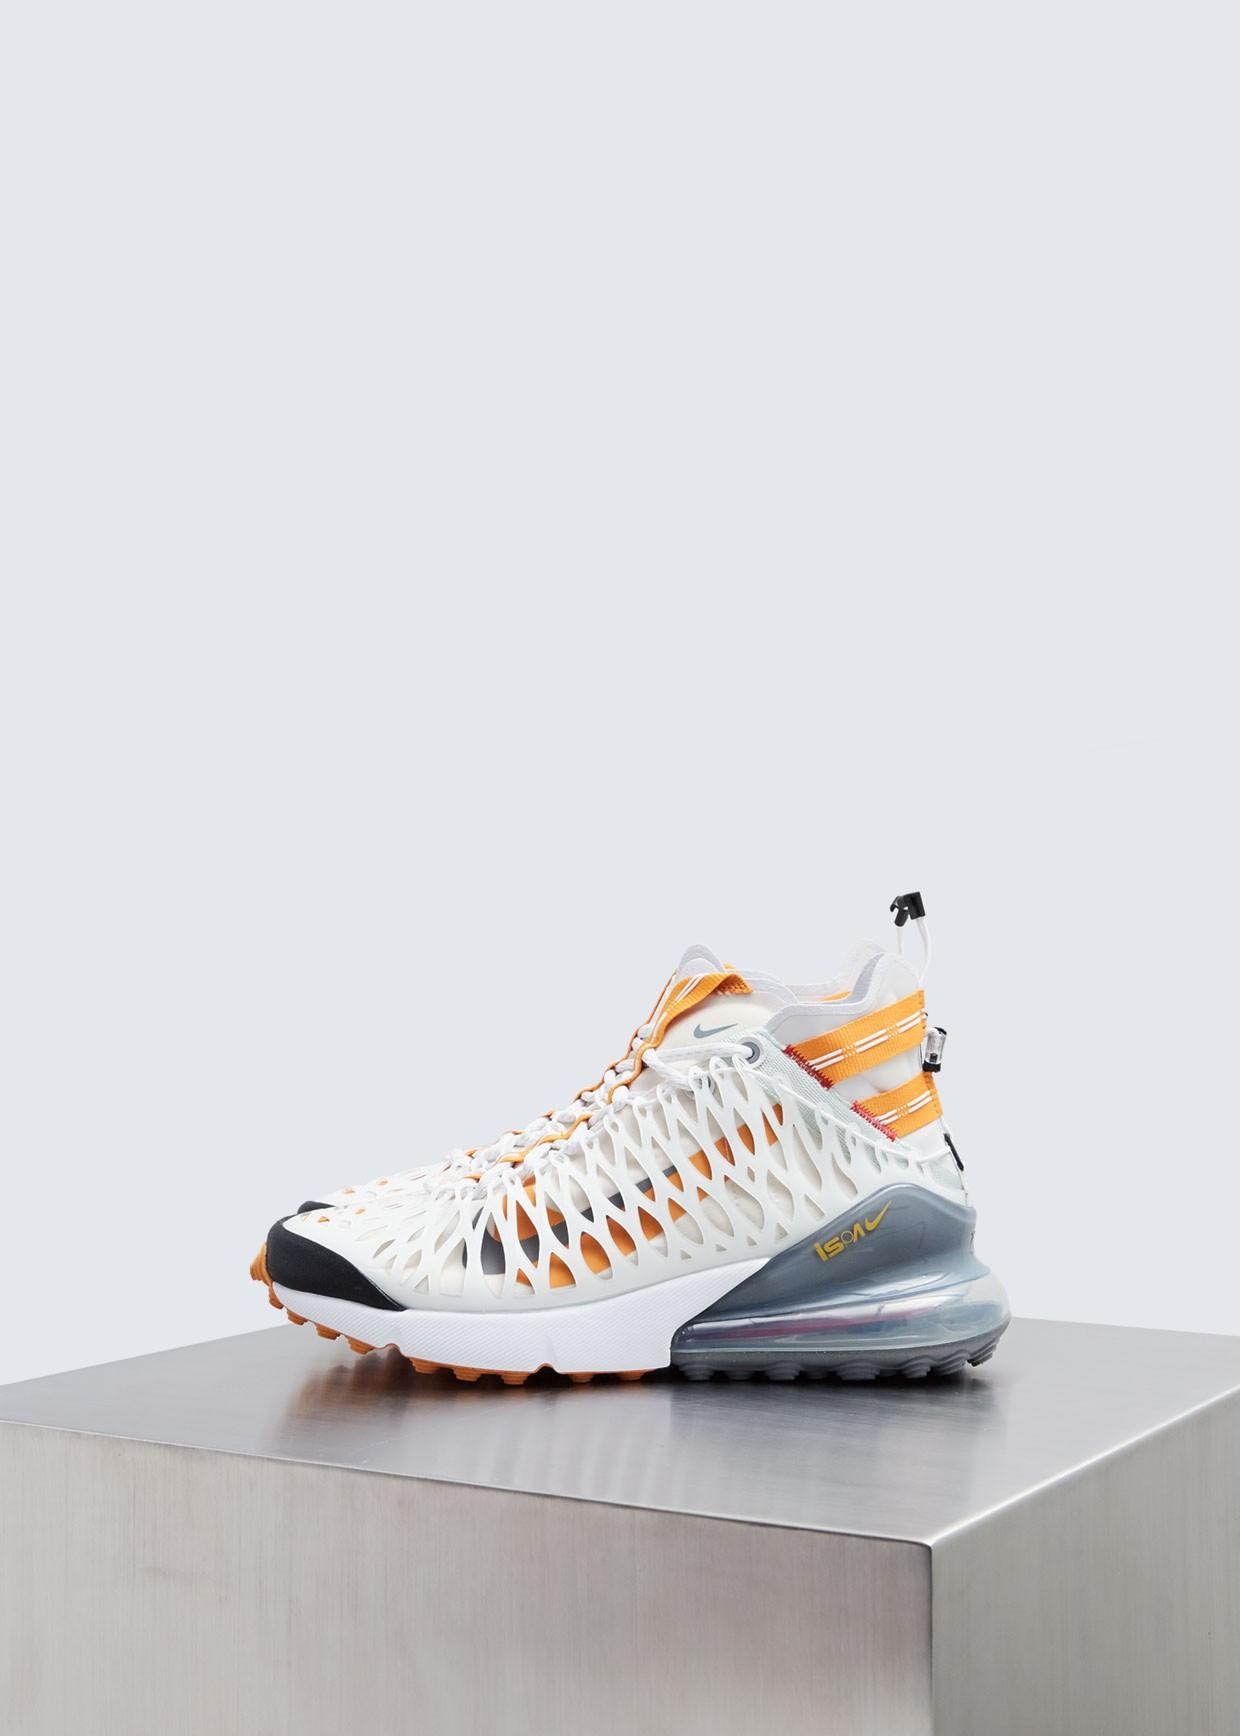 Lyst - Nike Air Max 270 Ispa Sneaker in White for Men 45a84f214